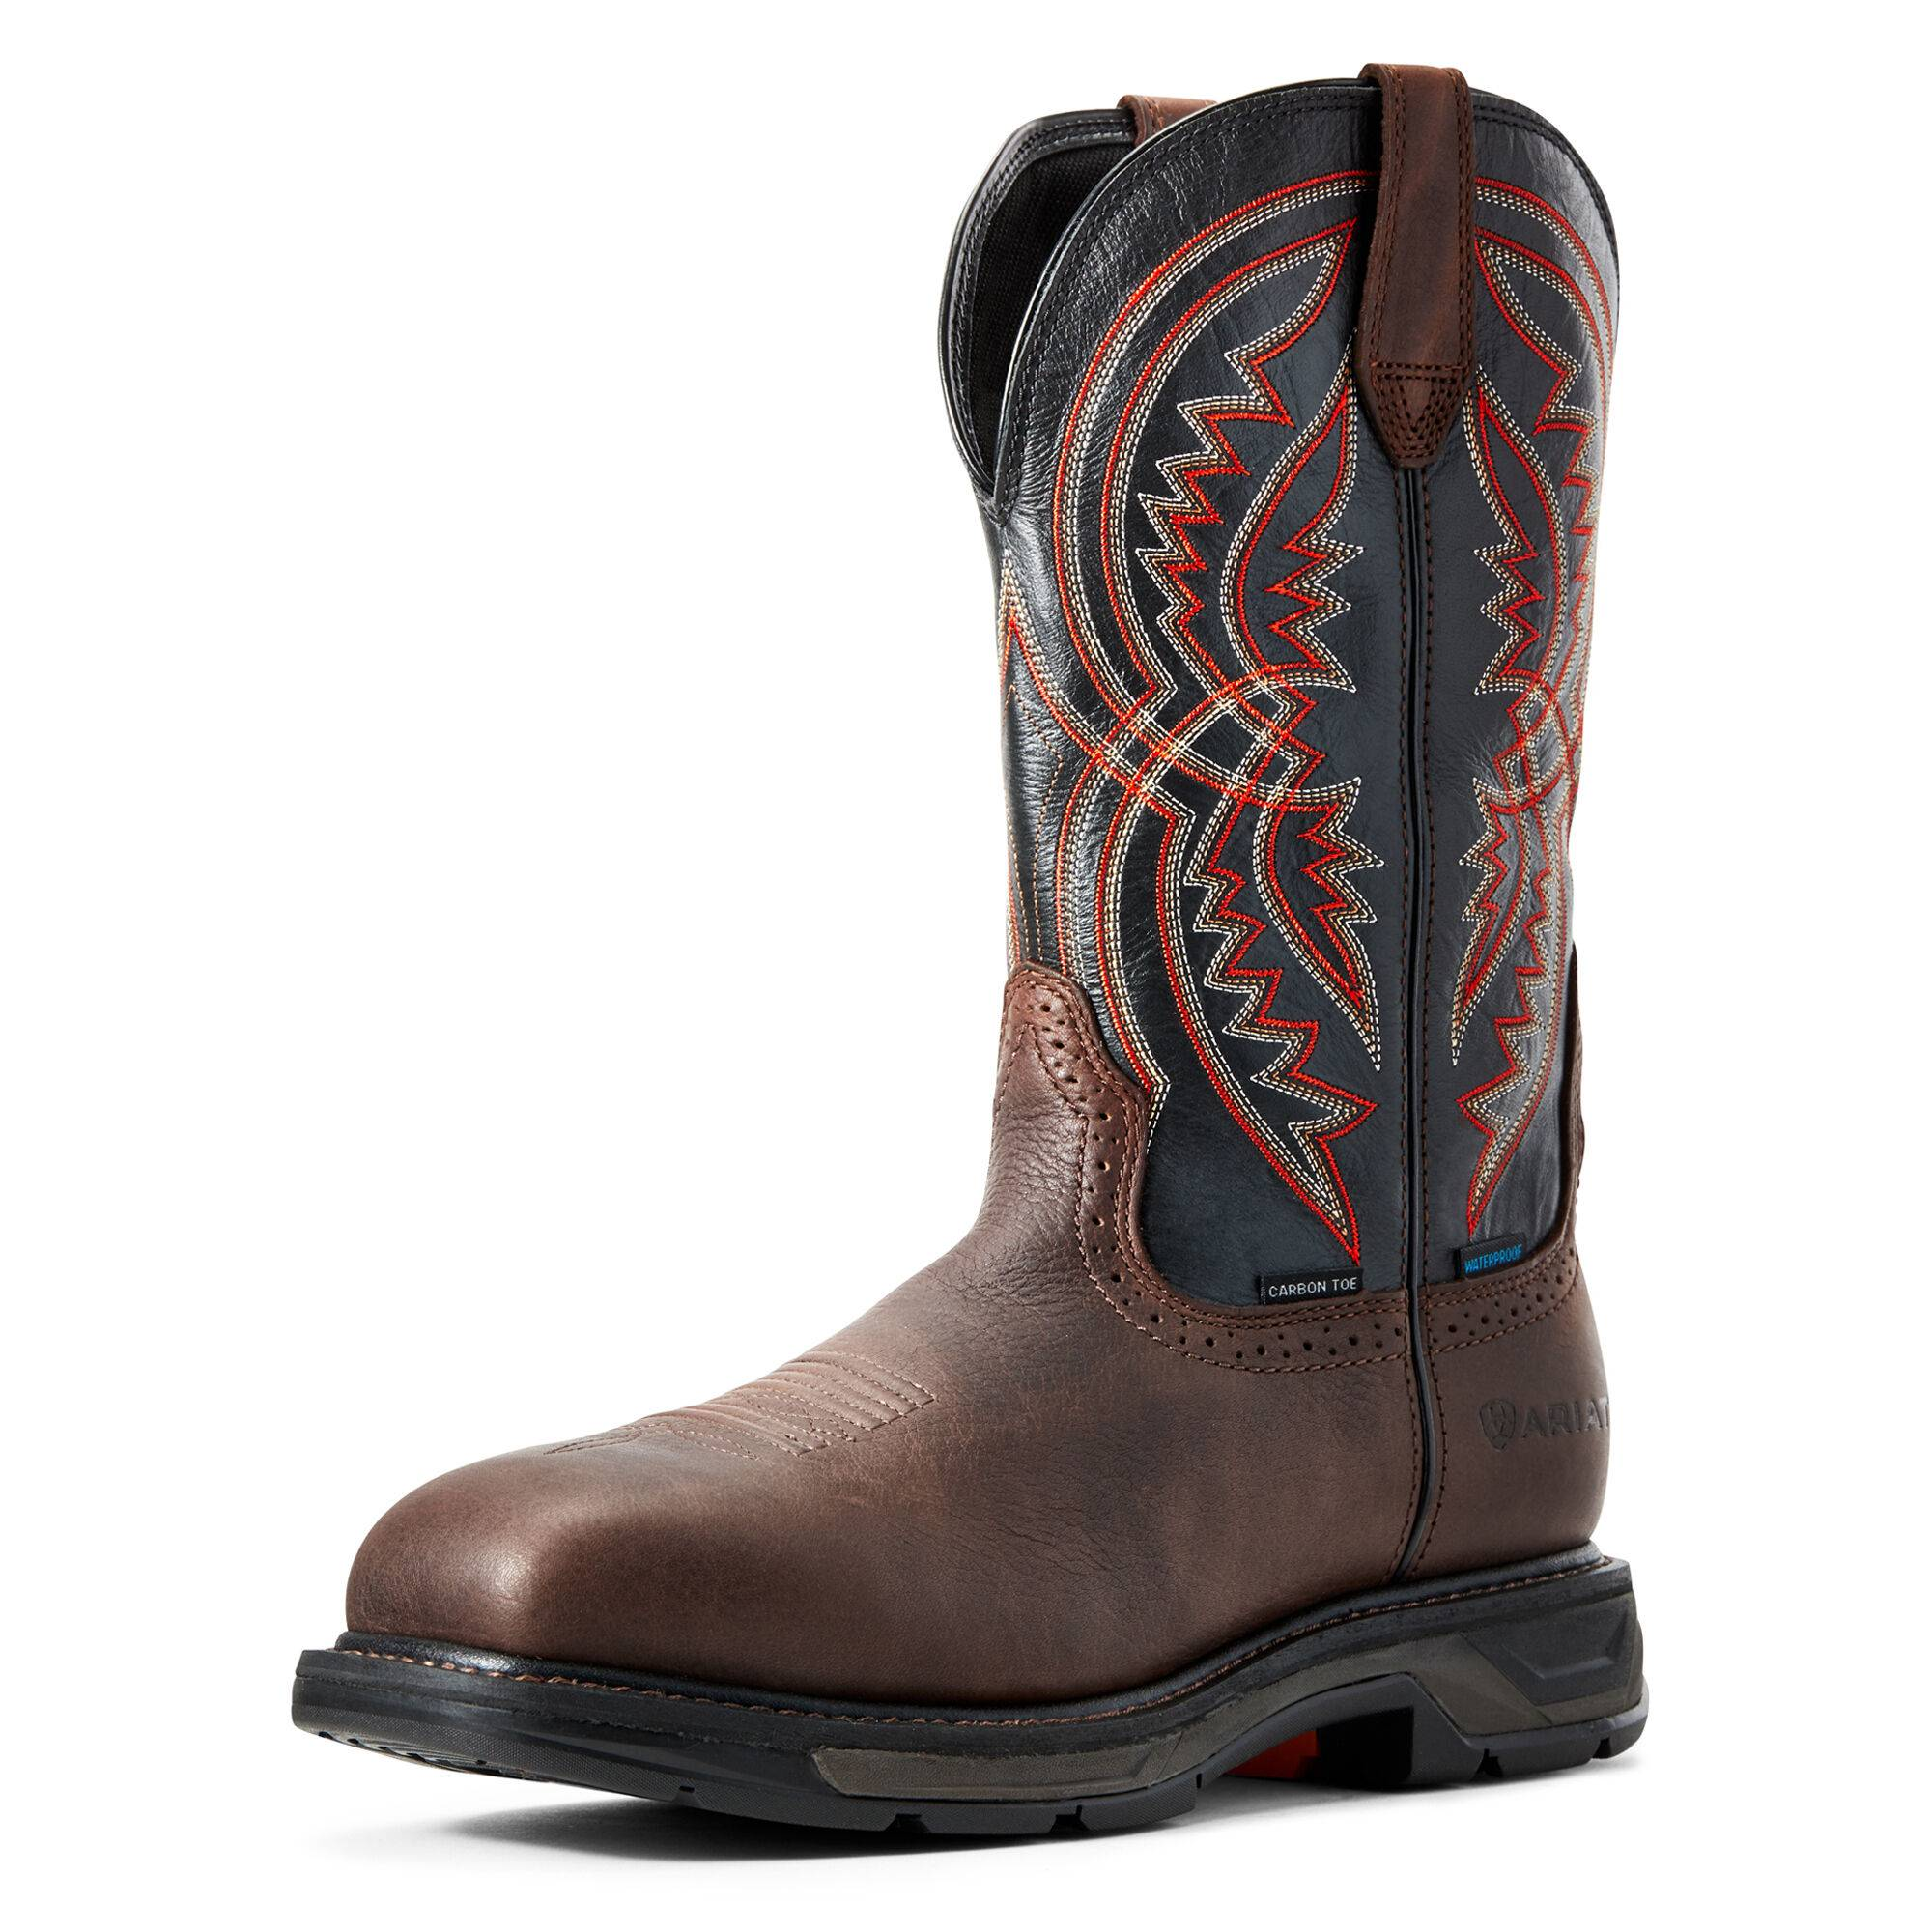 Ariat Men's WorkHog XT Coil Waterproof Carbon Toe Work Boots in Briar Brown Leather, Size 8 D / Medium by Ariat